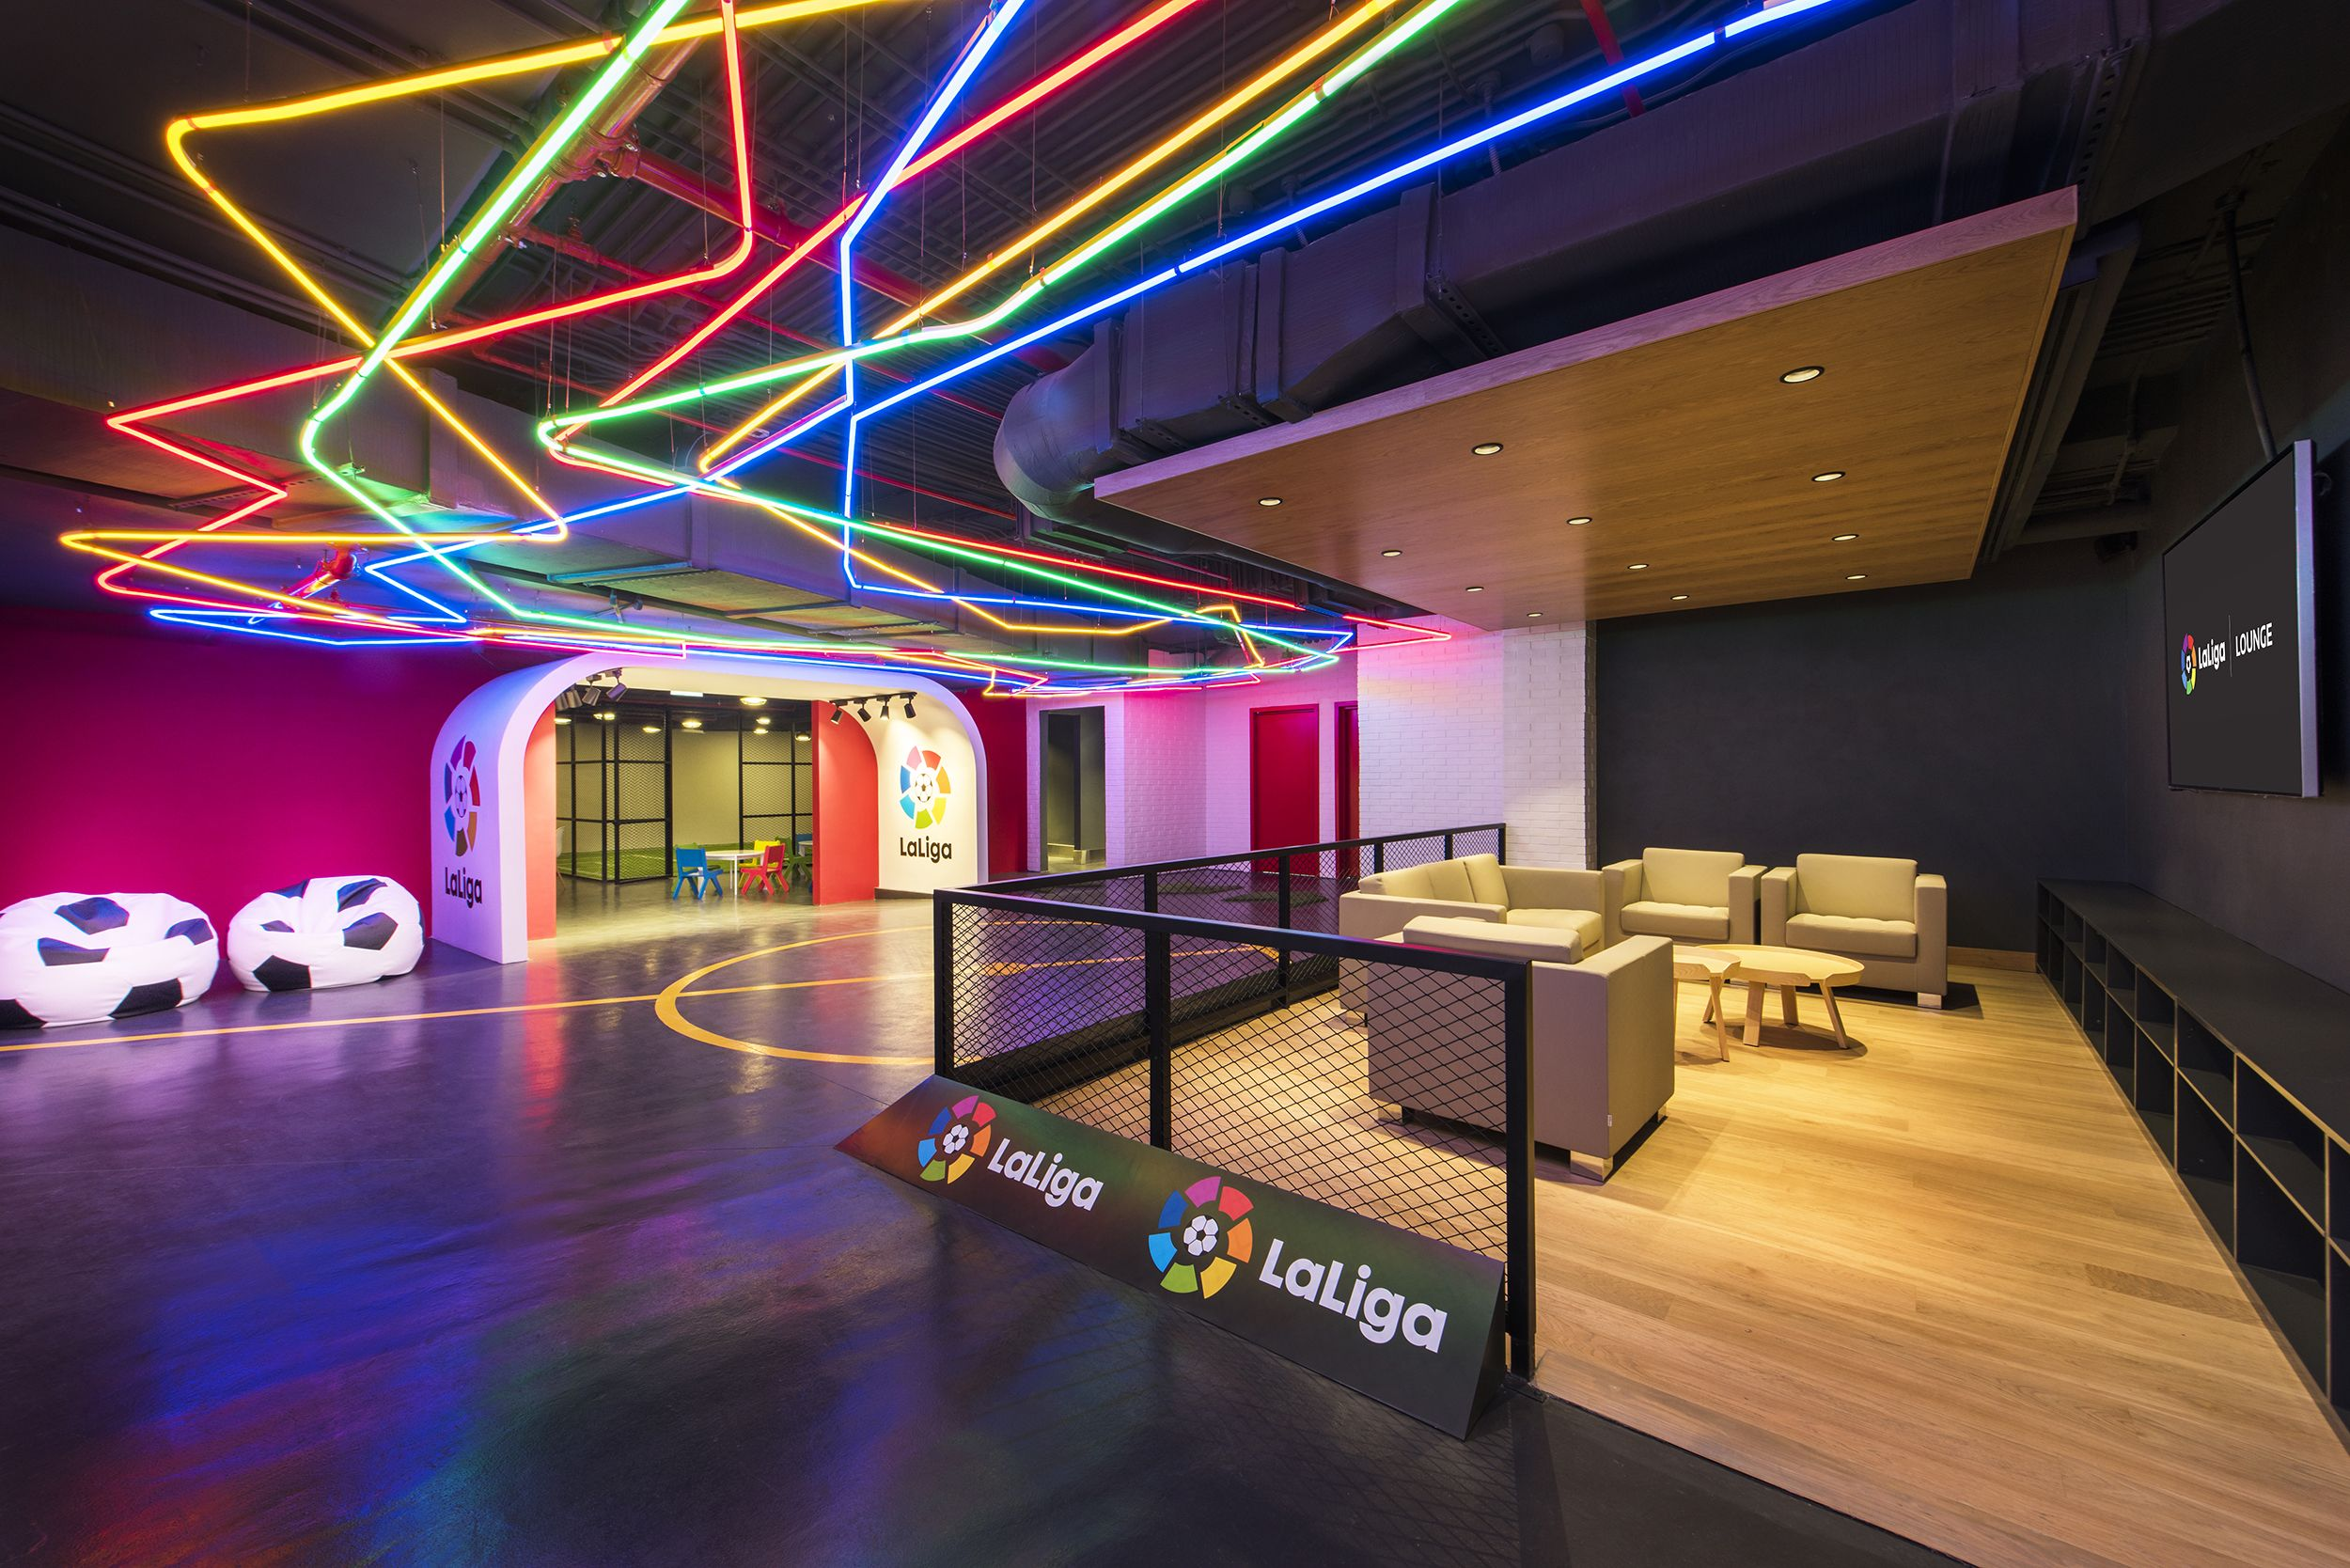 LaLiga Lounge Doha are preparing for the first ever LaLiga Festival